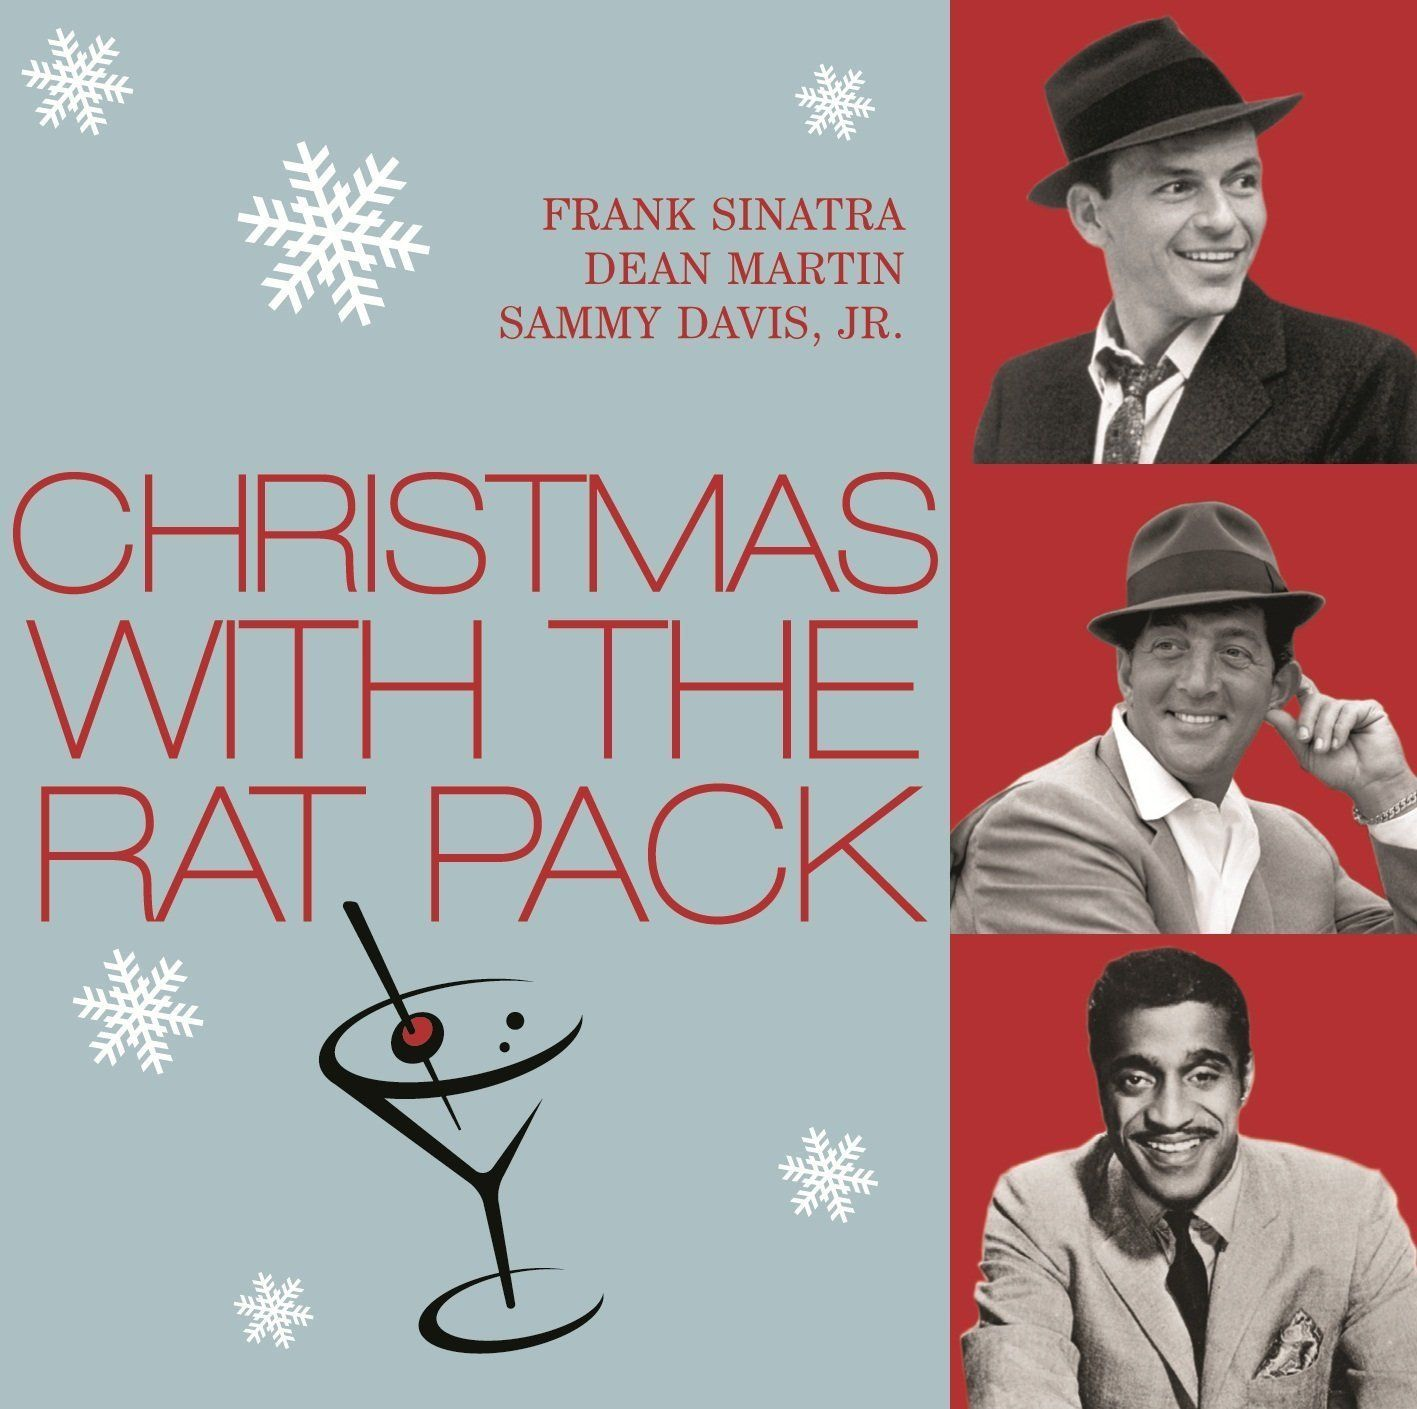 Frank Sinatra - Christmas With The Rat Pack album cover